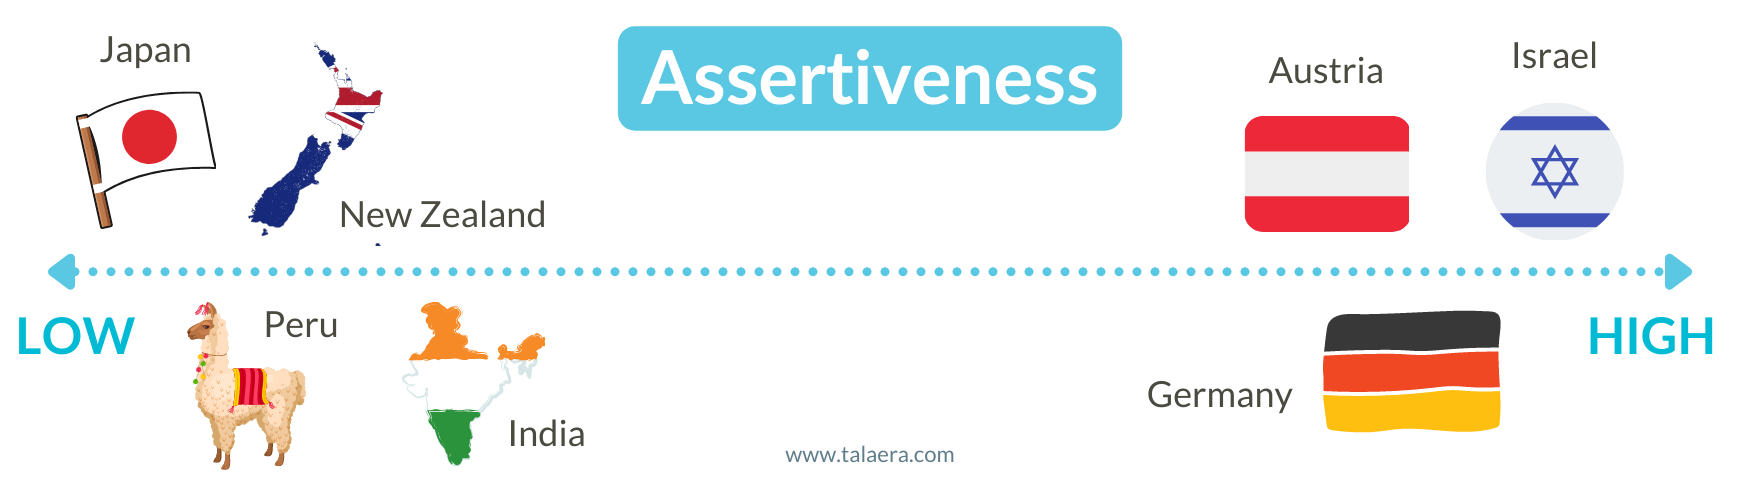 Assertiveness Countries Communication Cultural Differences- Talaera Business English Training